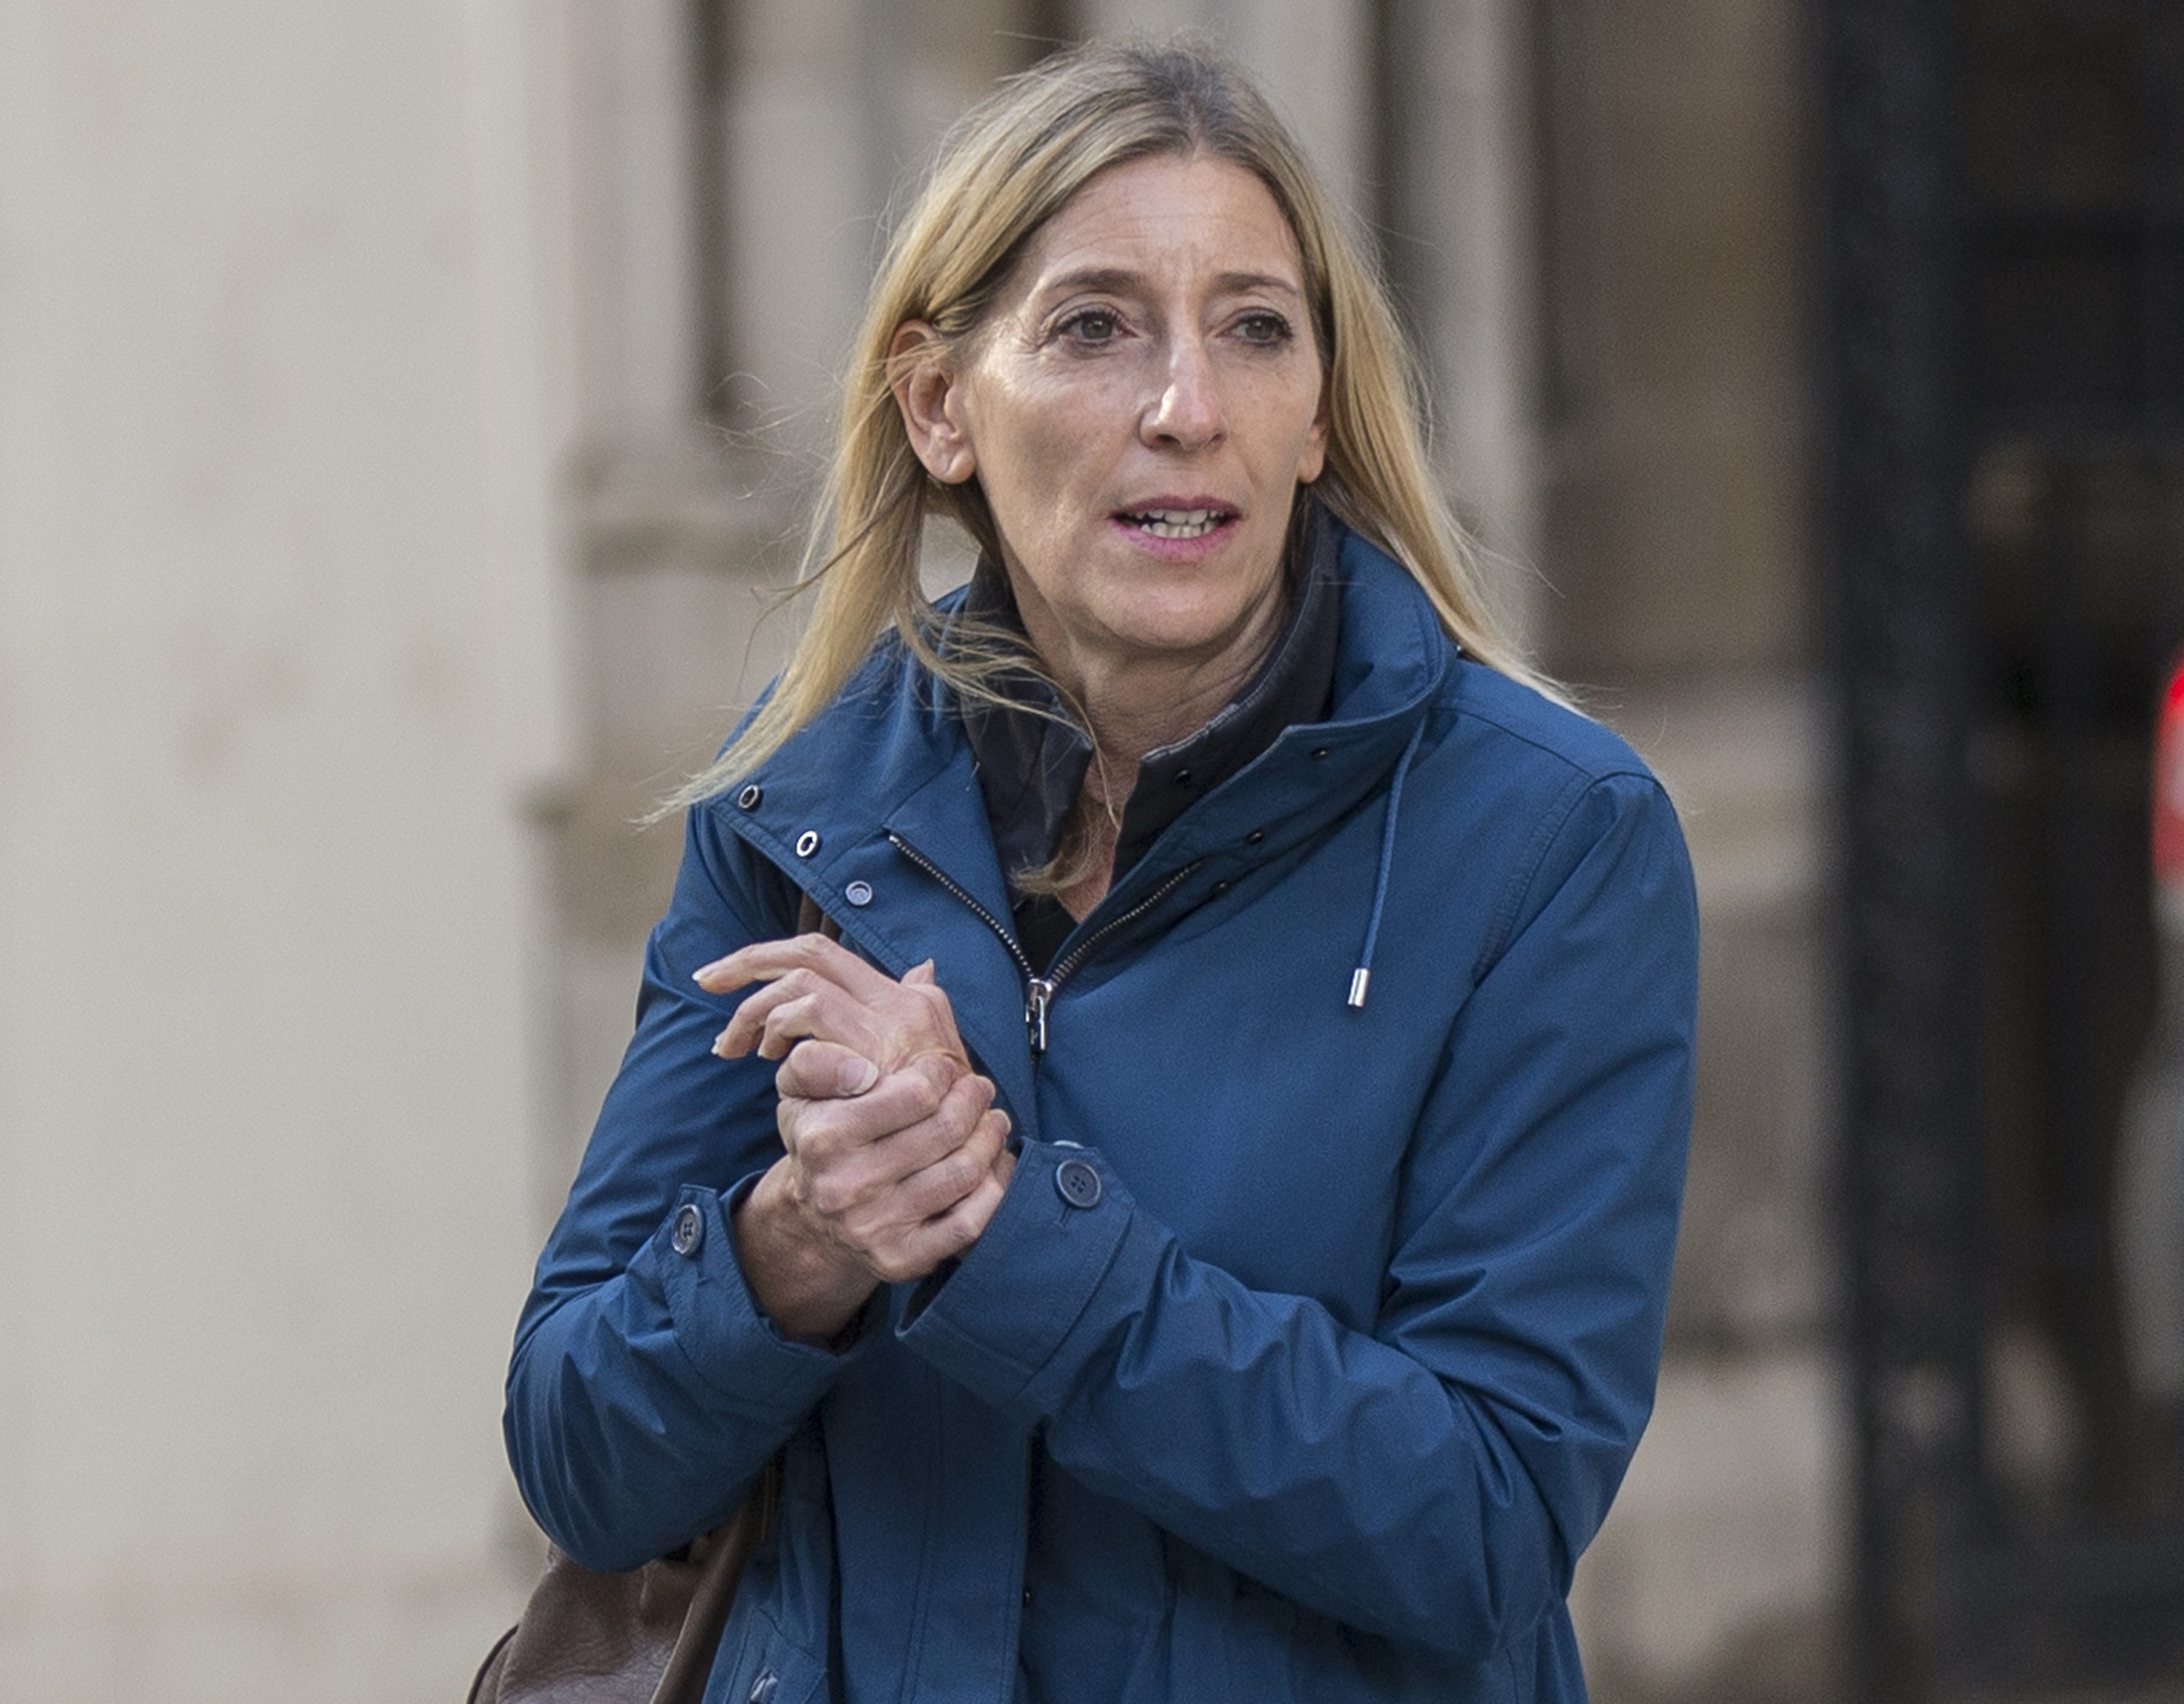 Jamie Cooper-Hohn, wife of top hedge-fund boss Chris Hohn, leaves the High Court after a divorce hearing, in central London on Oct. 10, 2014